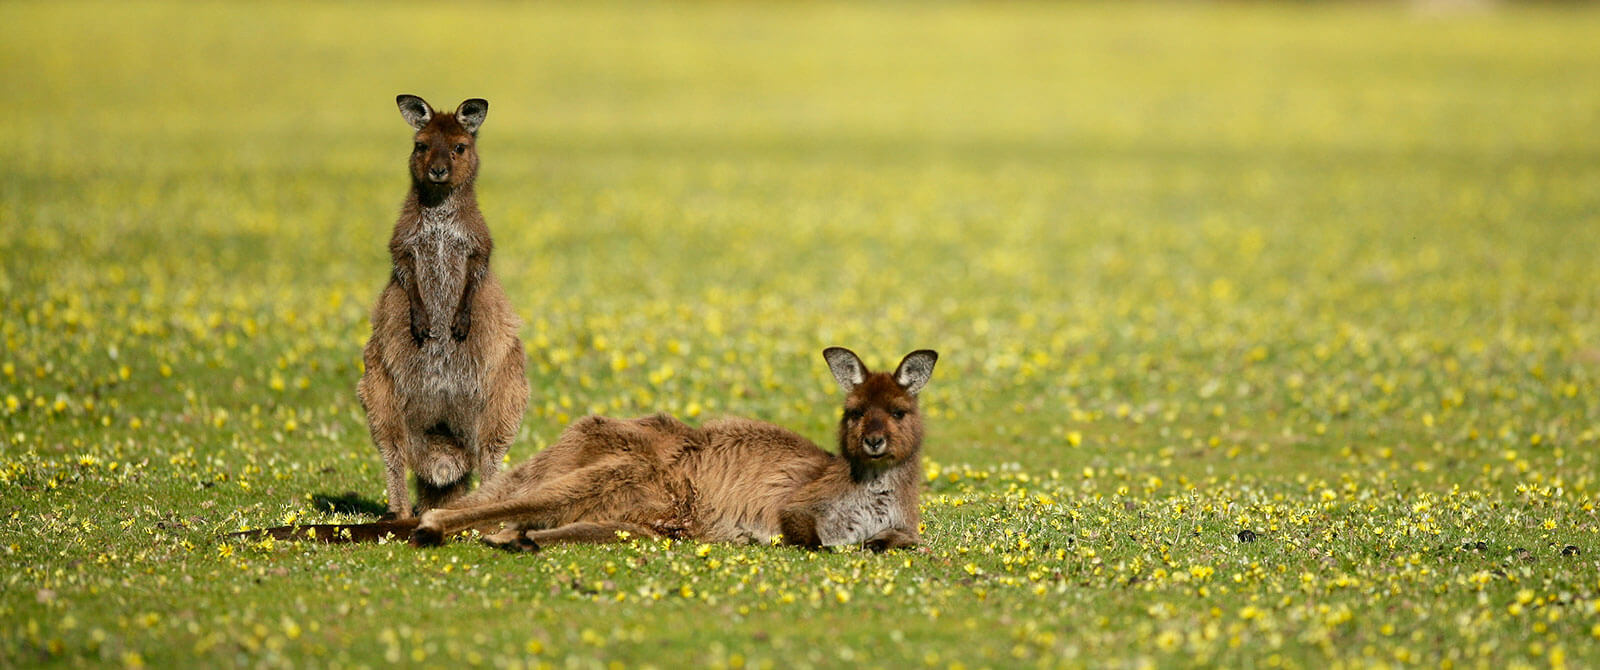 Wildlife on Kangaroo Island - Exceptional Kangaroo Island Touring - Australia Getaway: Sunshine Coast and Kangaroo Island